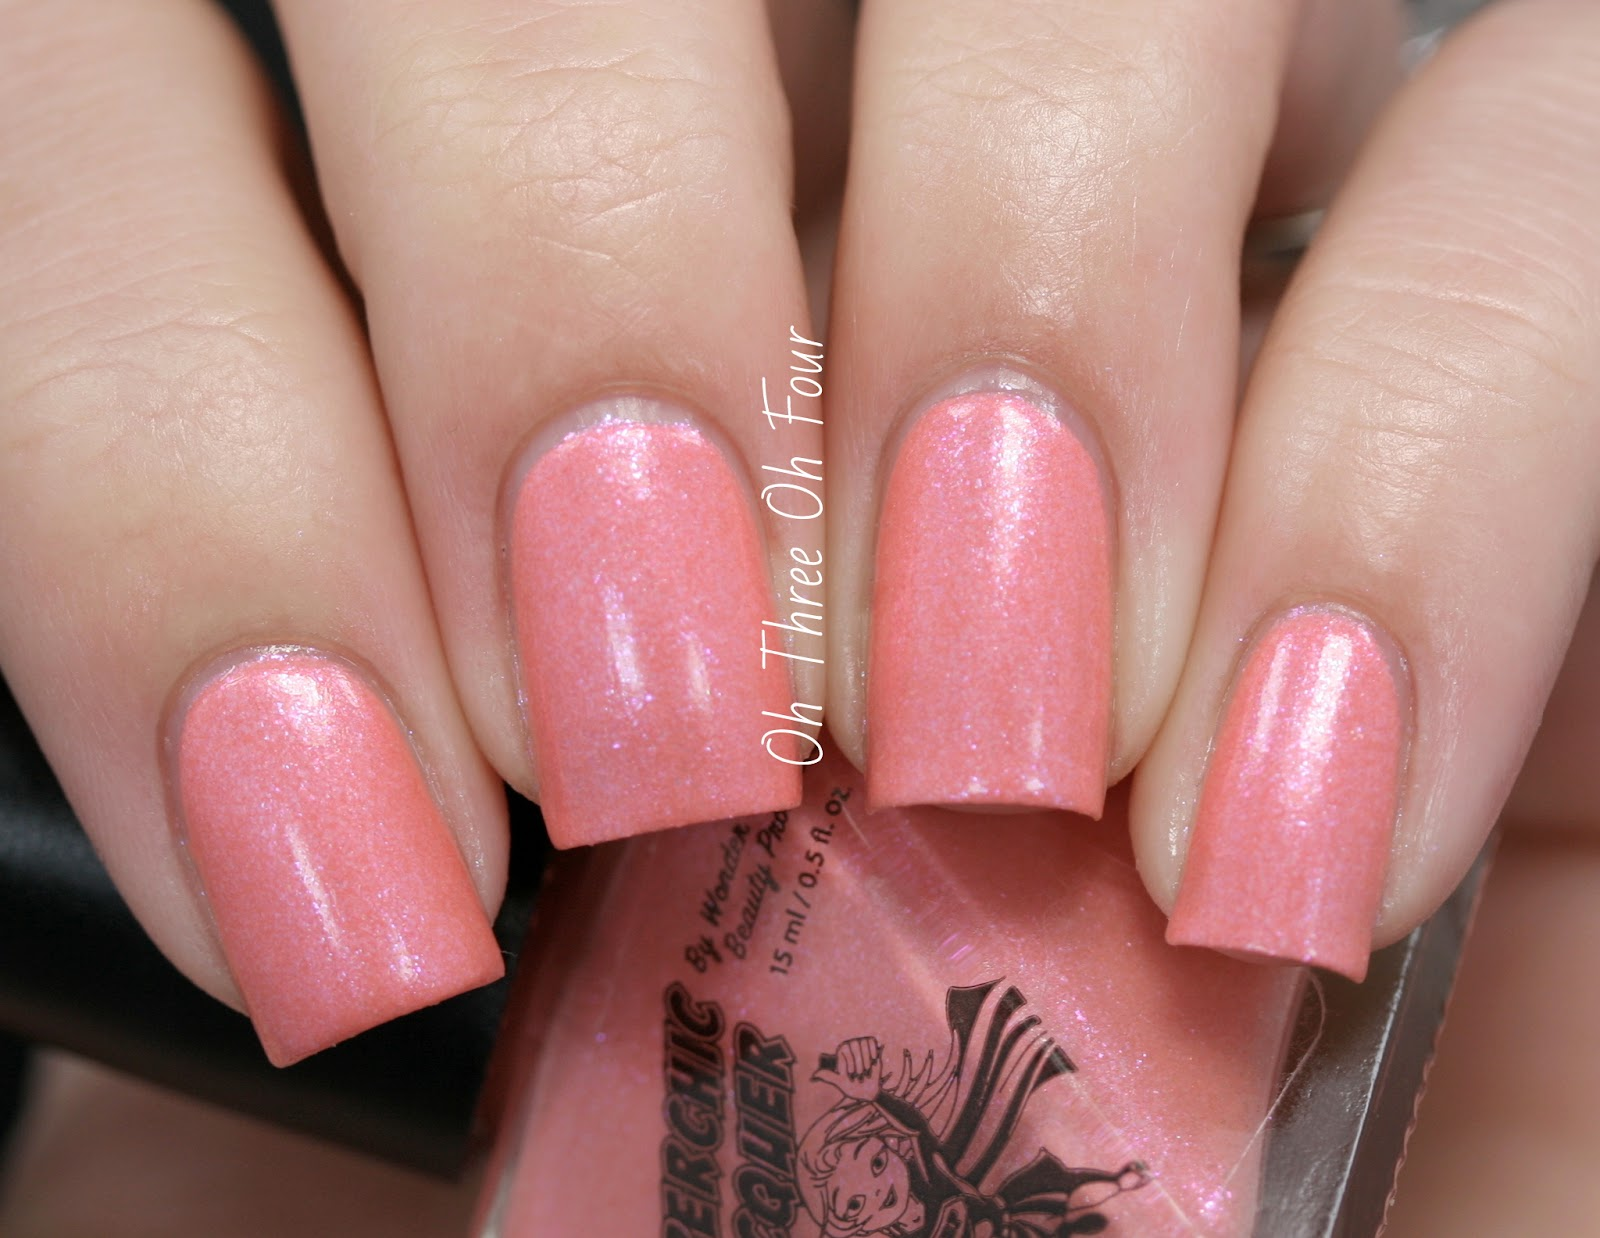 SuperChic Lacquer Lost My Melon Swatch